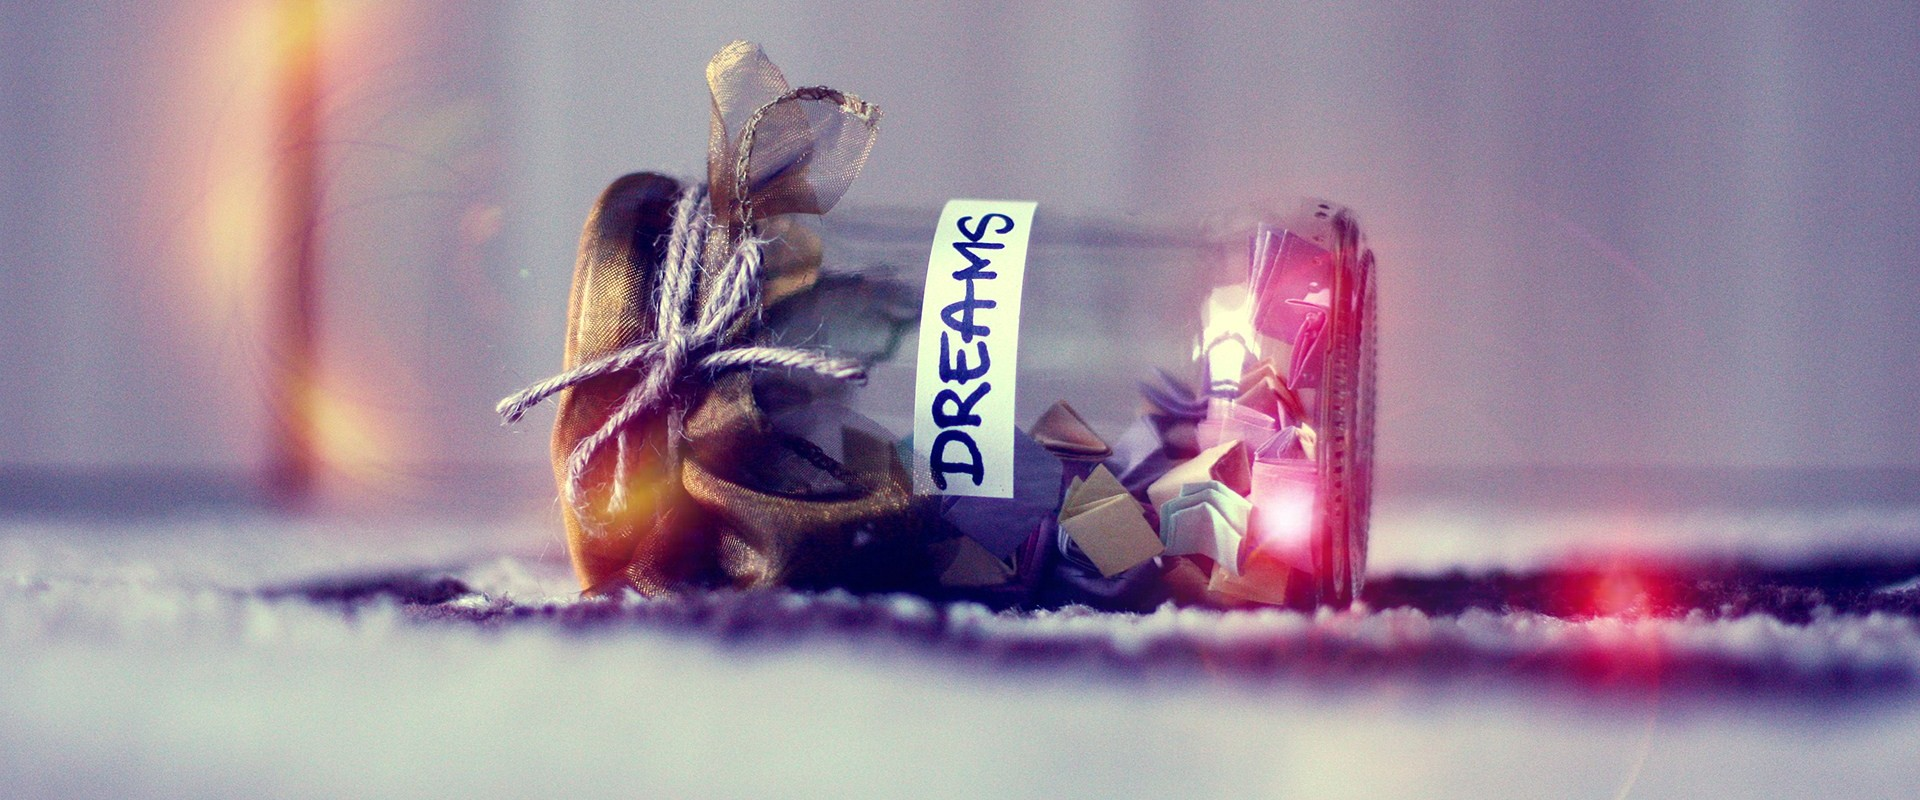 dreams-photo-light-gift-glass